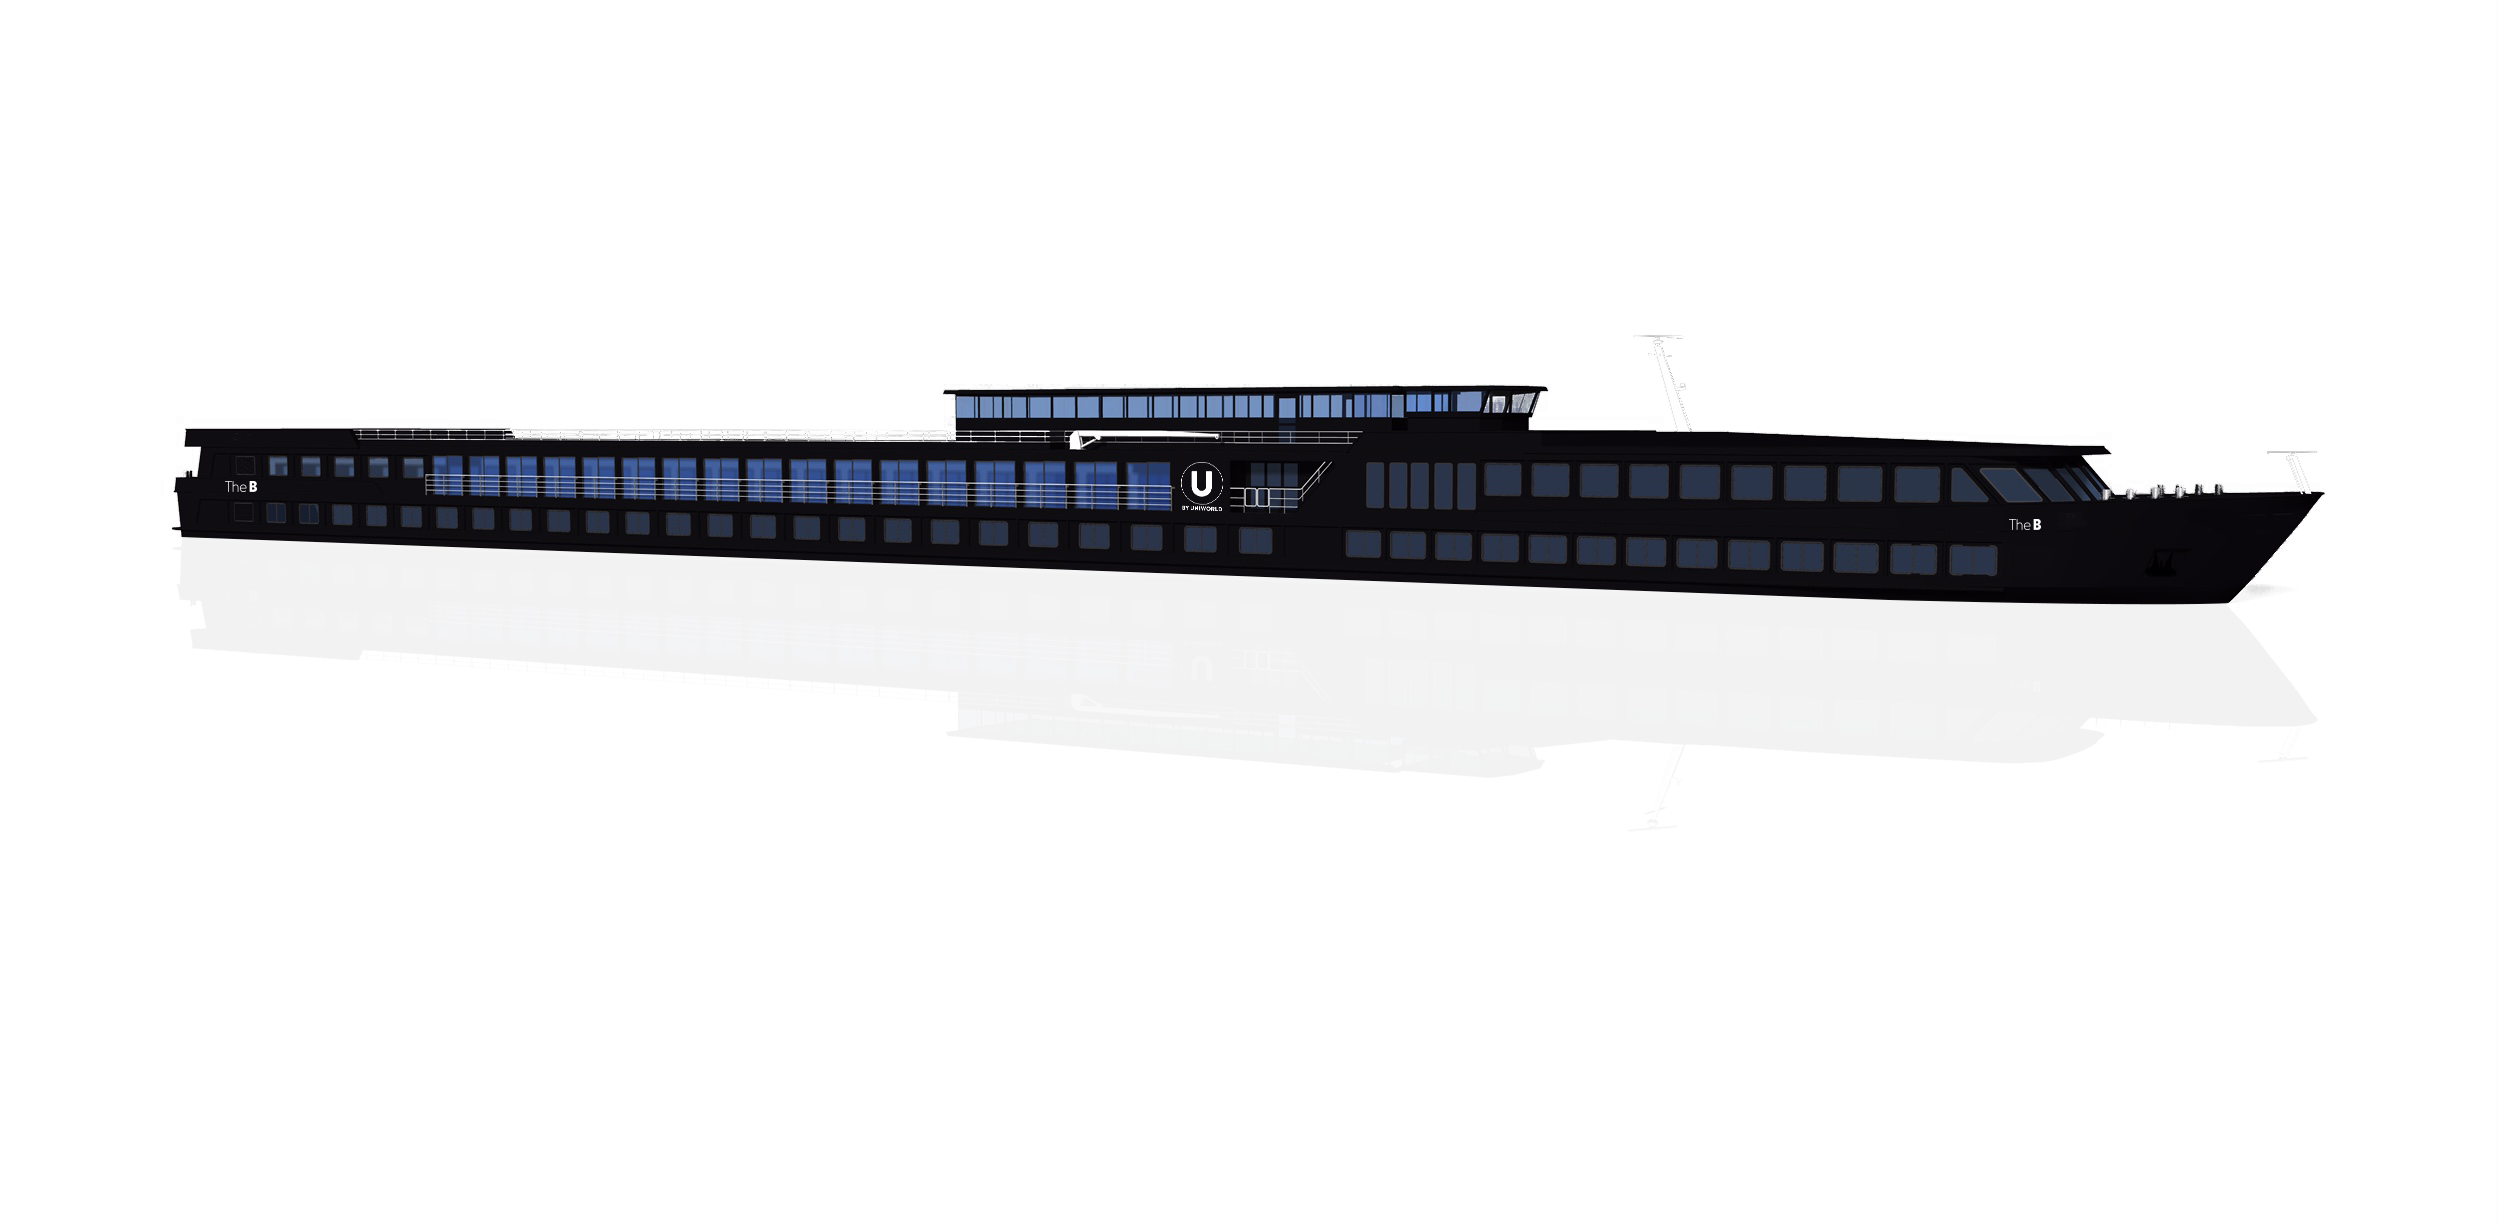 Artist rendering of the U by Uniworld ships - The A and The B